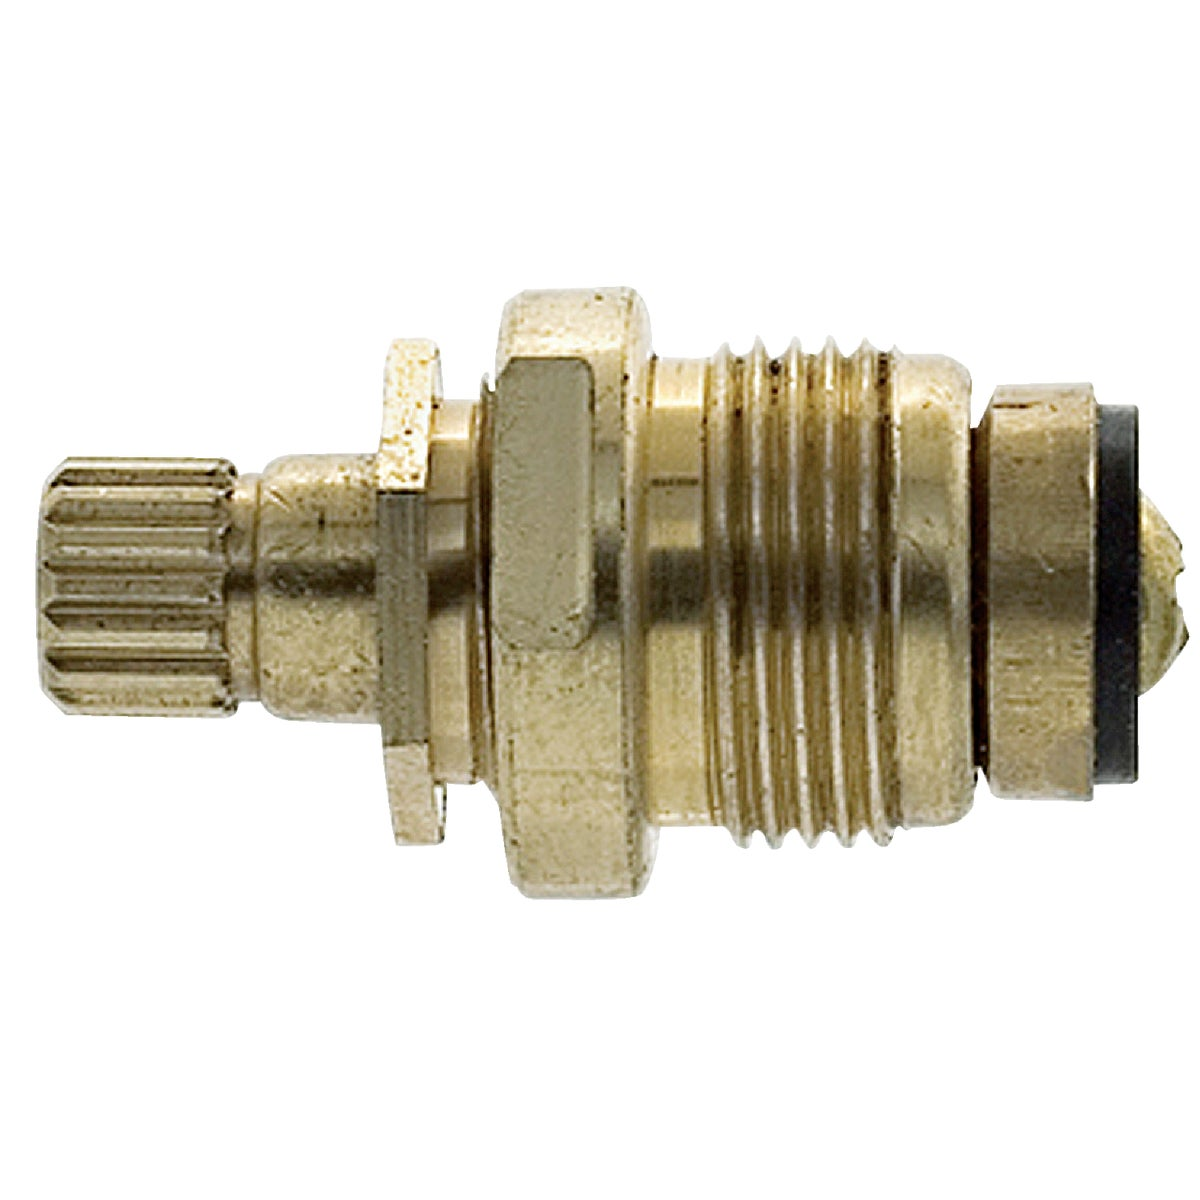 1C-6H CENTRAL BRASS STEM - 15835E by Danco Perfect Match